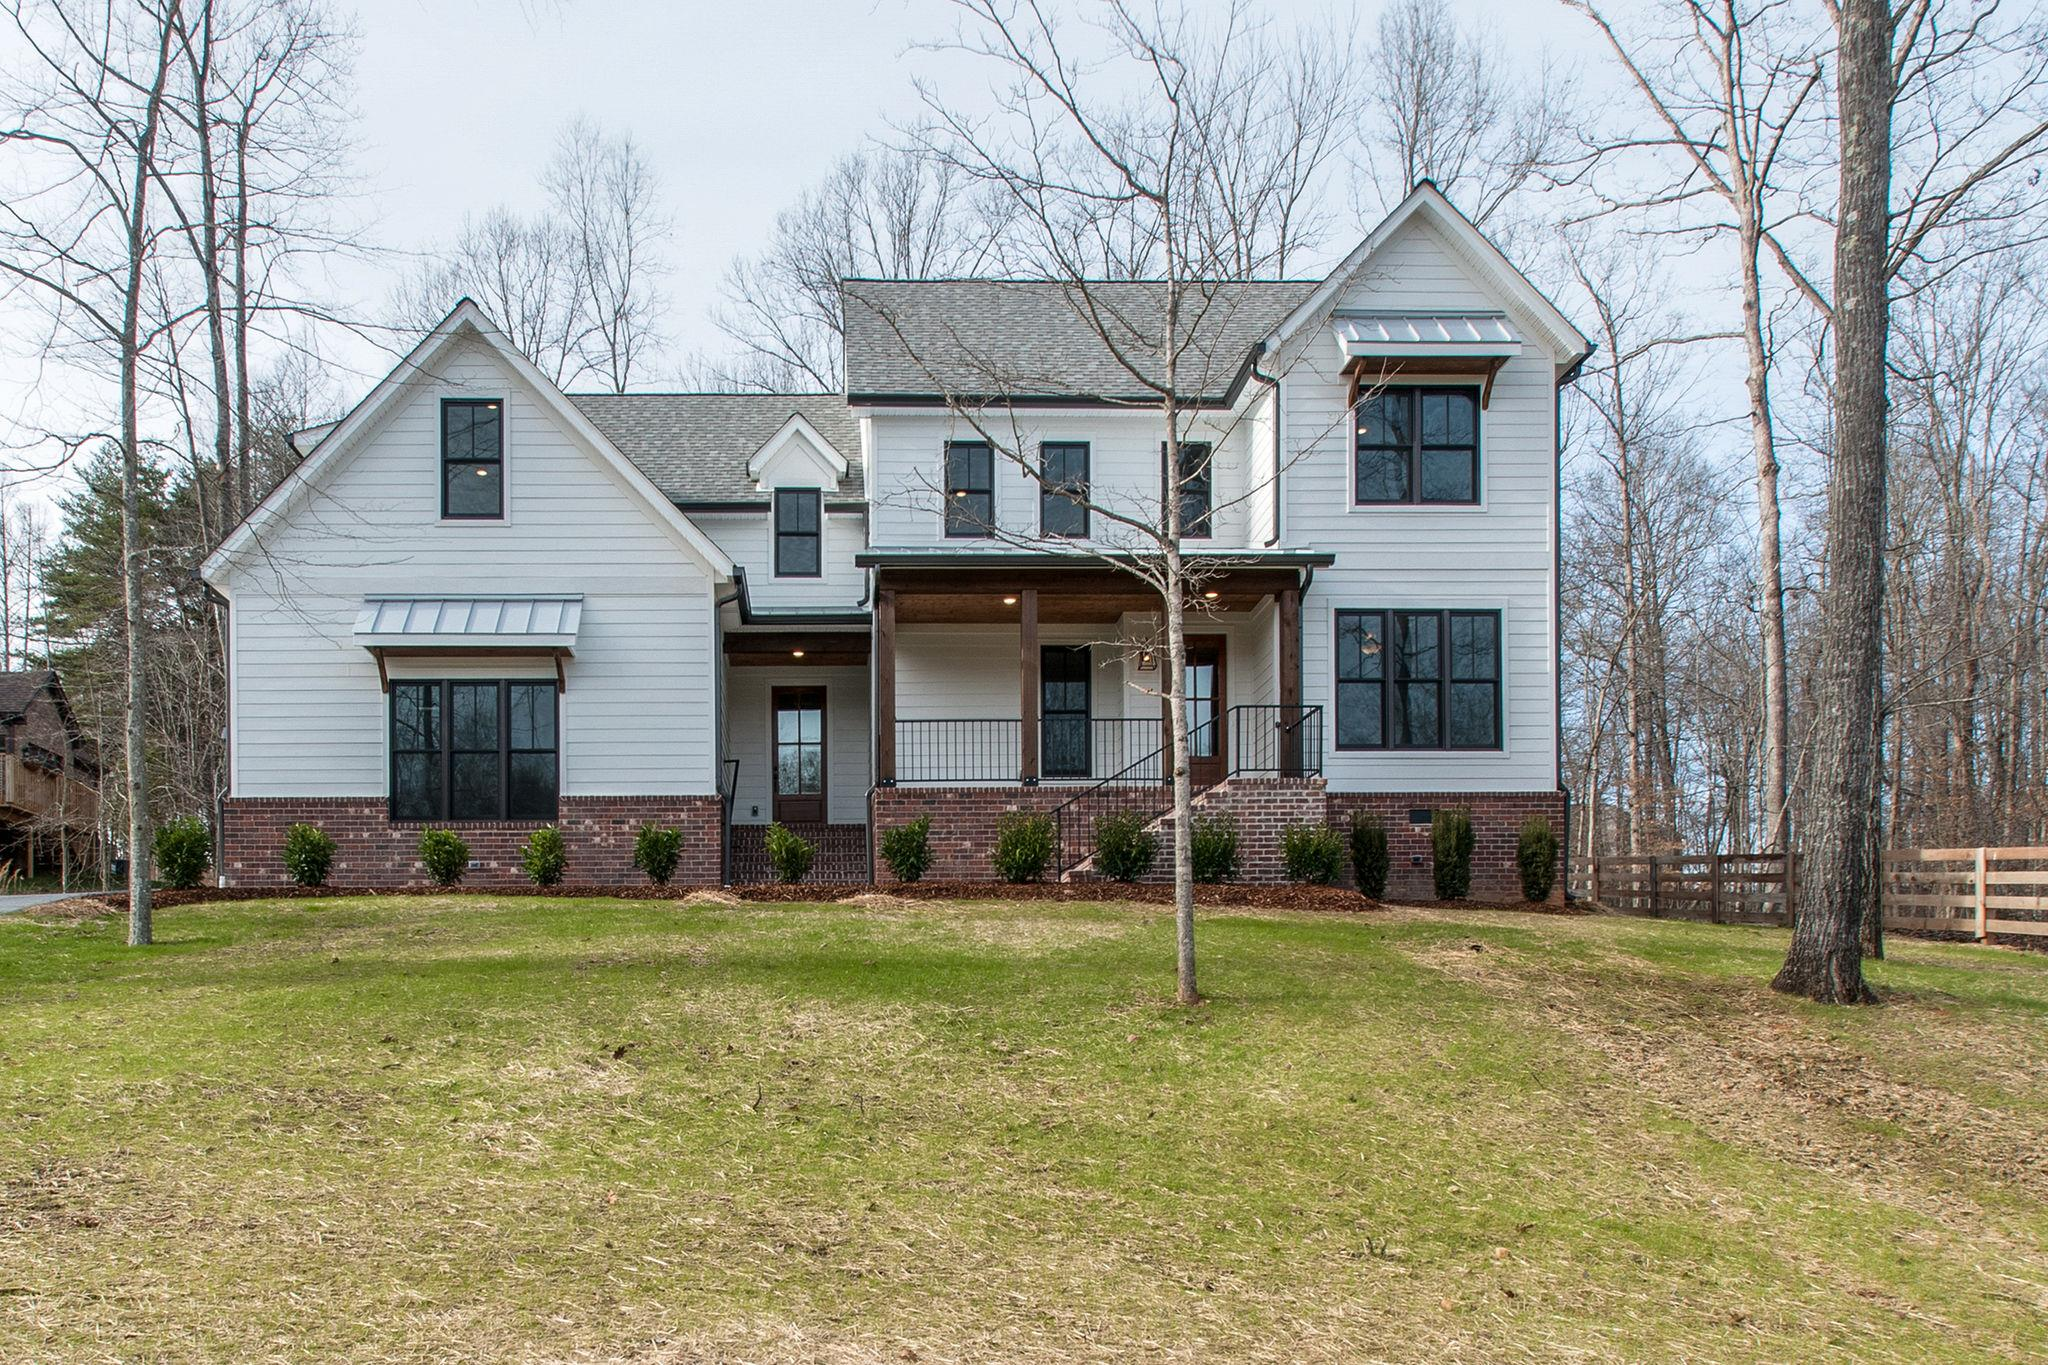 7173 Kyles Creek Dr., Fairview, TN 37062 - Fairview, TN real estate listing